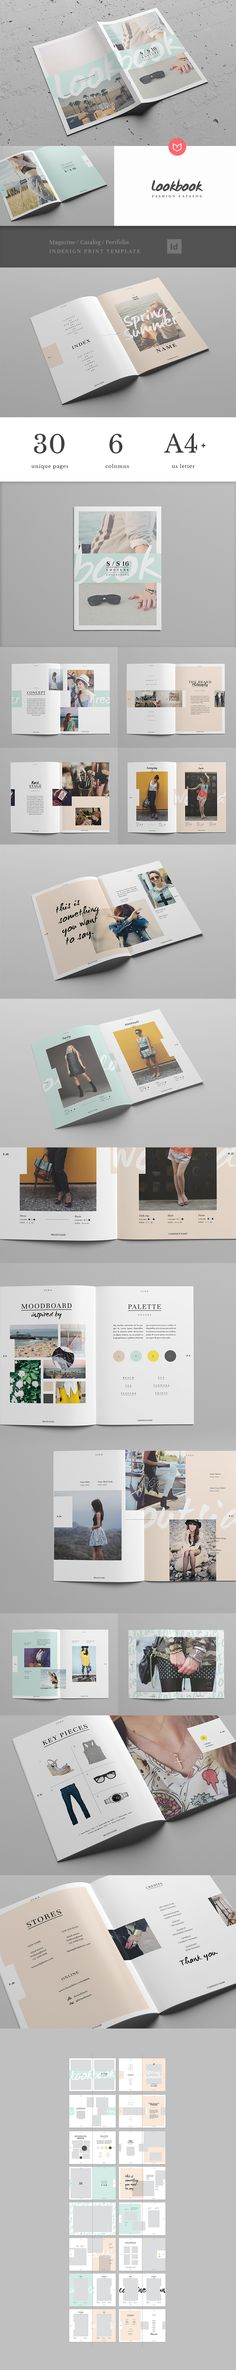 Lookbook Catalog Template on Behance